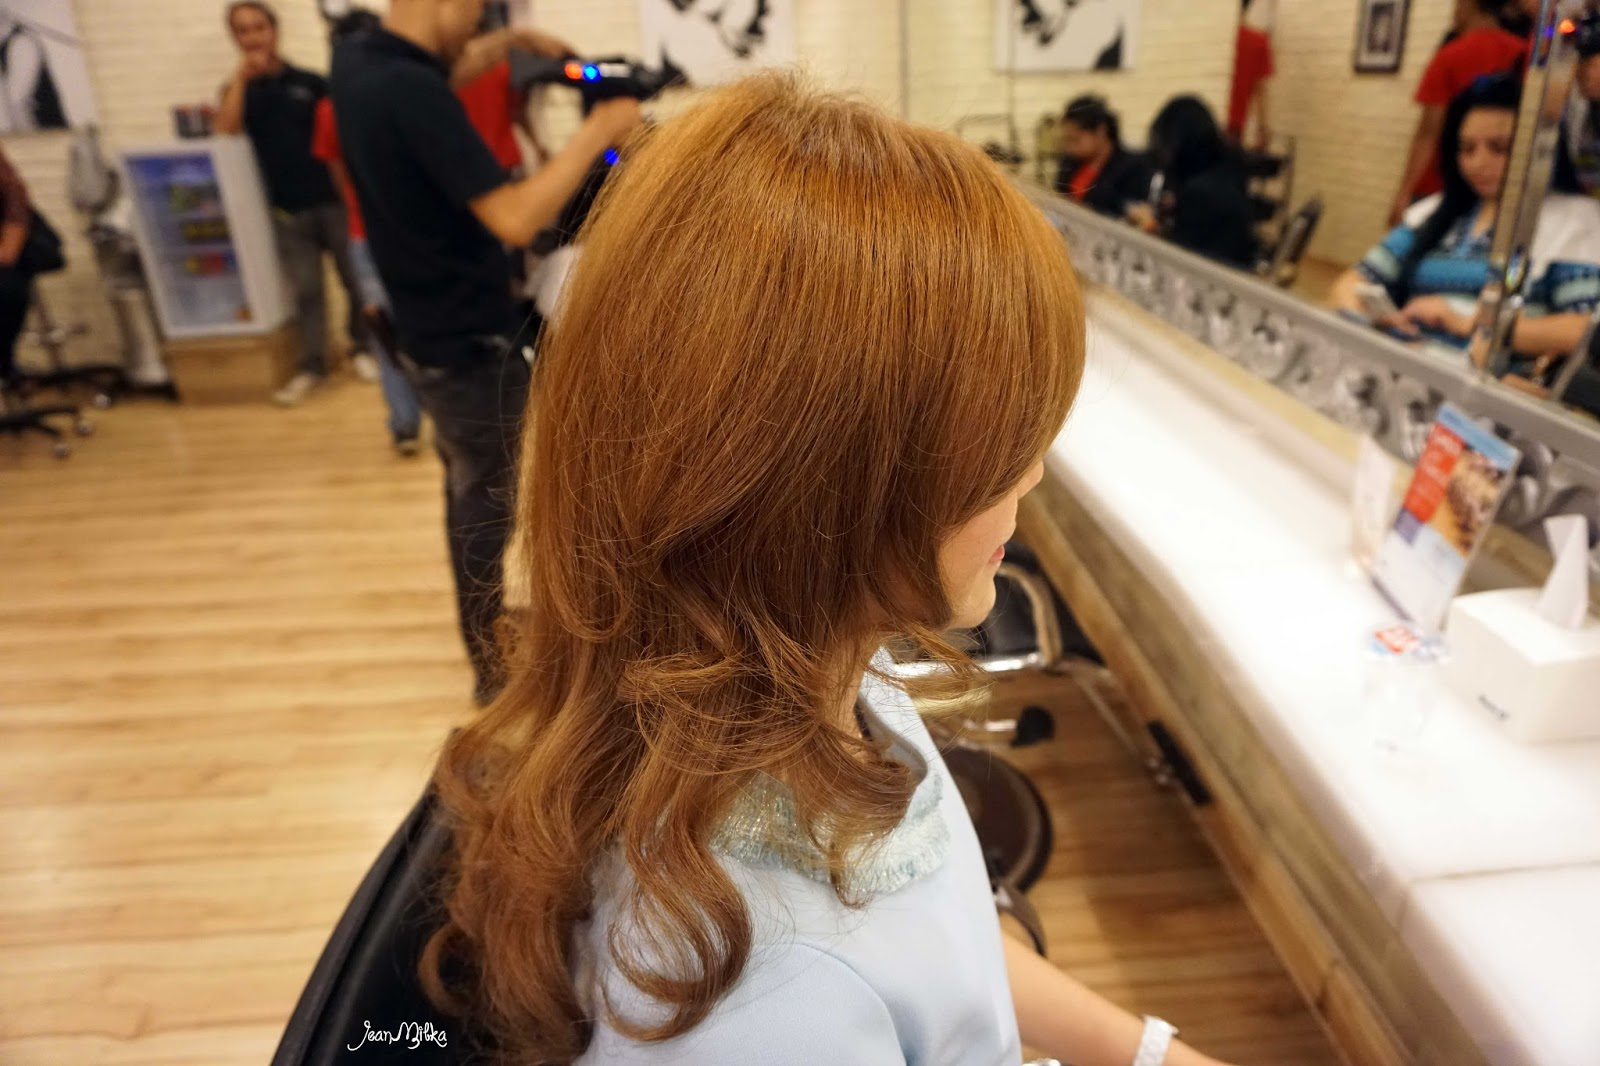 New gorgeous hair with gorjes hair beauty jean milka my hair absorb hair dye chemical so fast its always like that so far i never get through hair bleaching process to archive such a bright vibrant color pmusecretfo Images